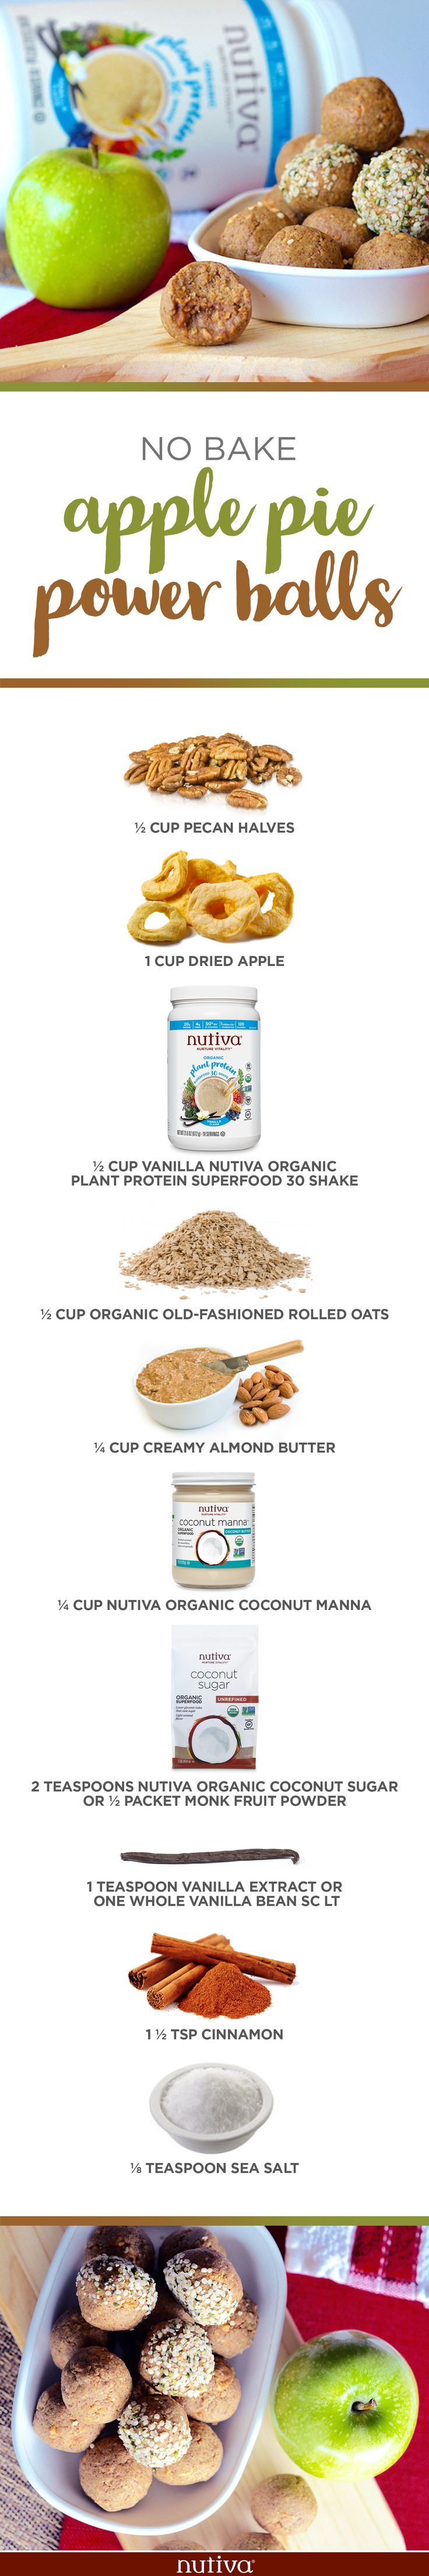 No Bake Apple Pie Power Balls kitchen.nutiva.com